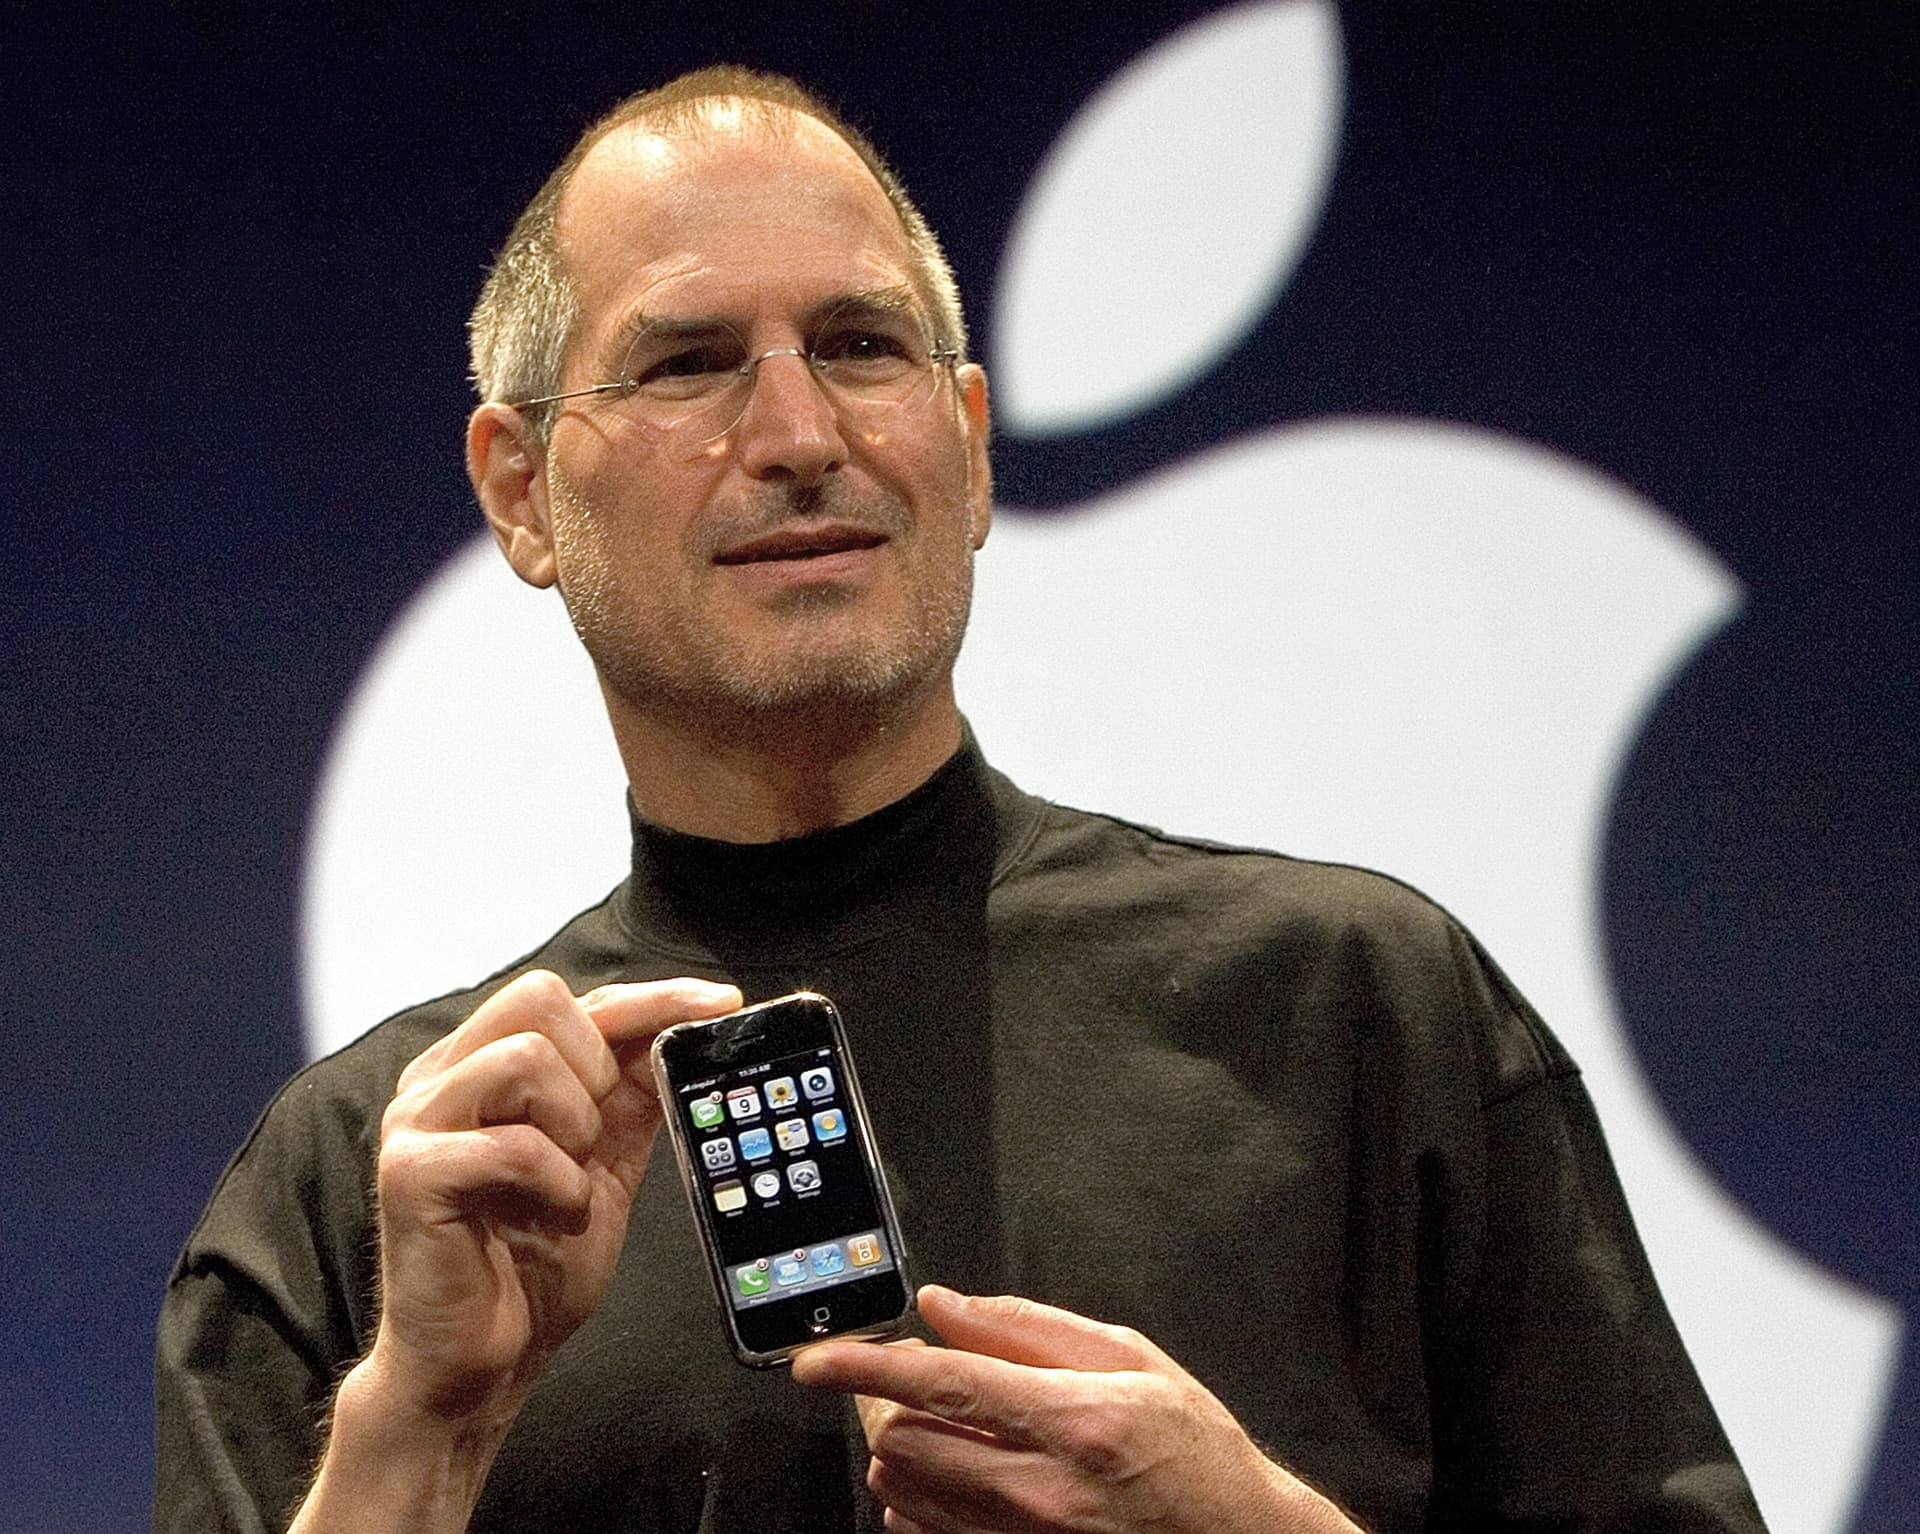 HOW STEVE JOB'S 'NEXT BIG THING' CHANGED THE GAME